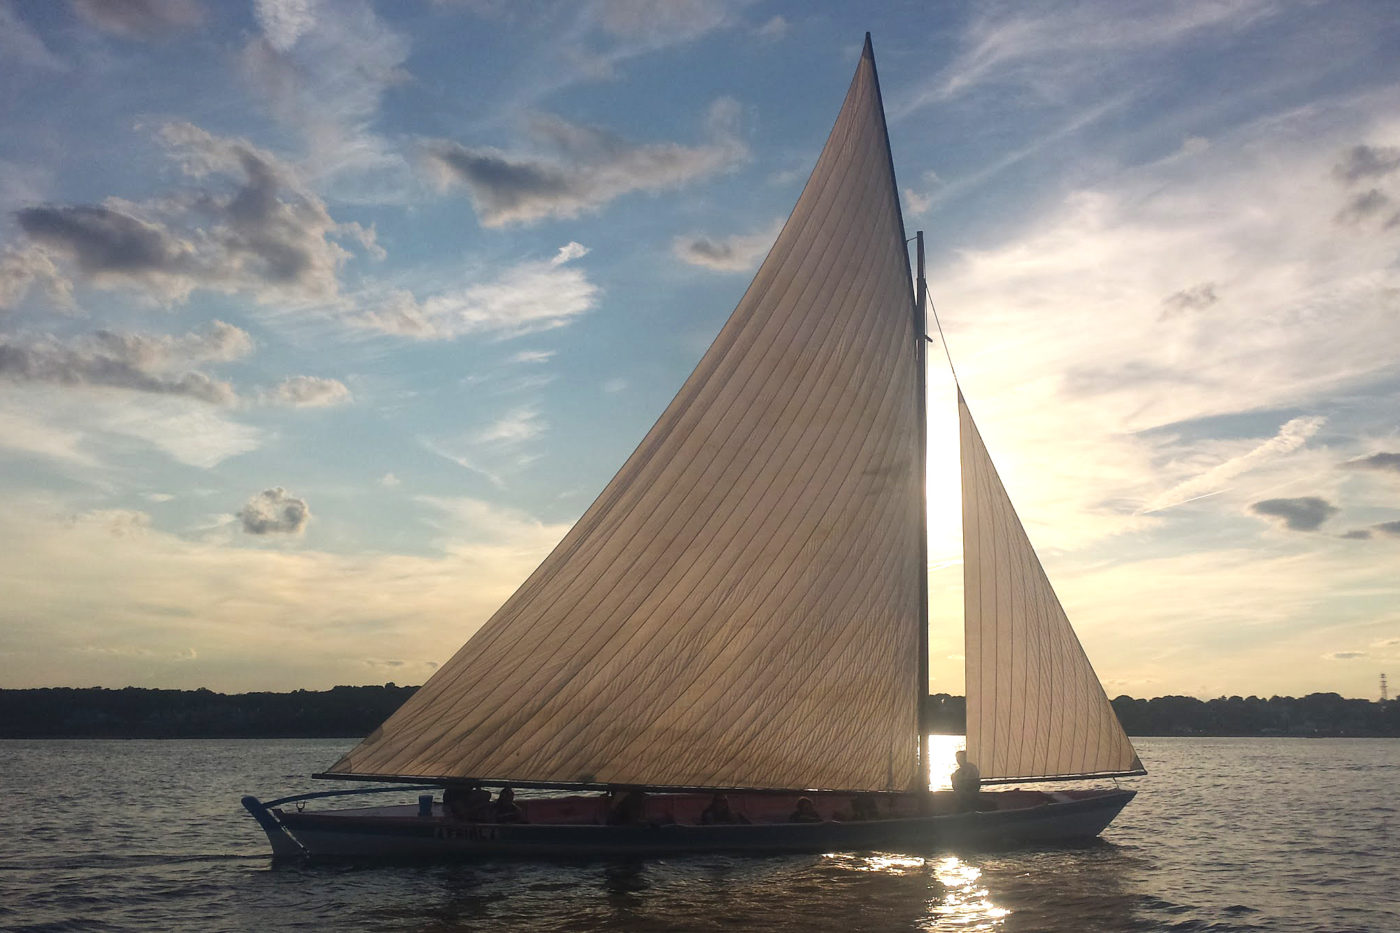 Azorean whaleboat in Clarks Cove in New Bedford, Massachusetts